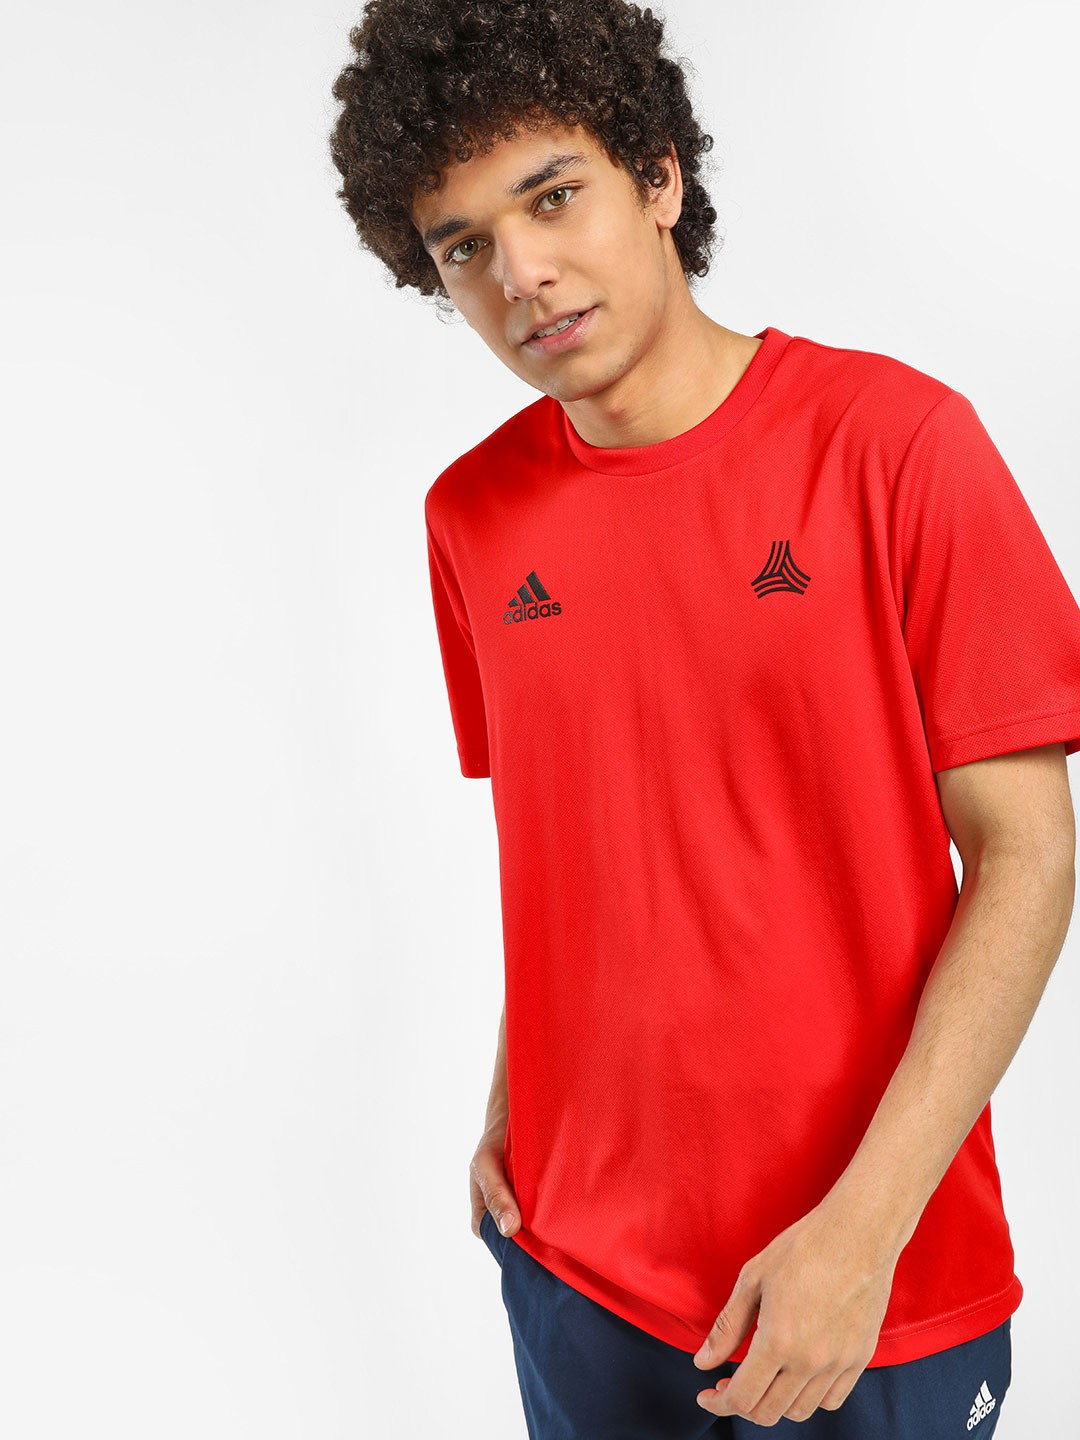 Adidas Red Tan Training T-Shirt 1